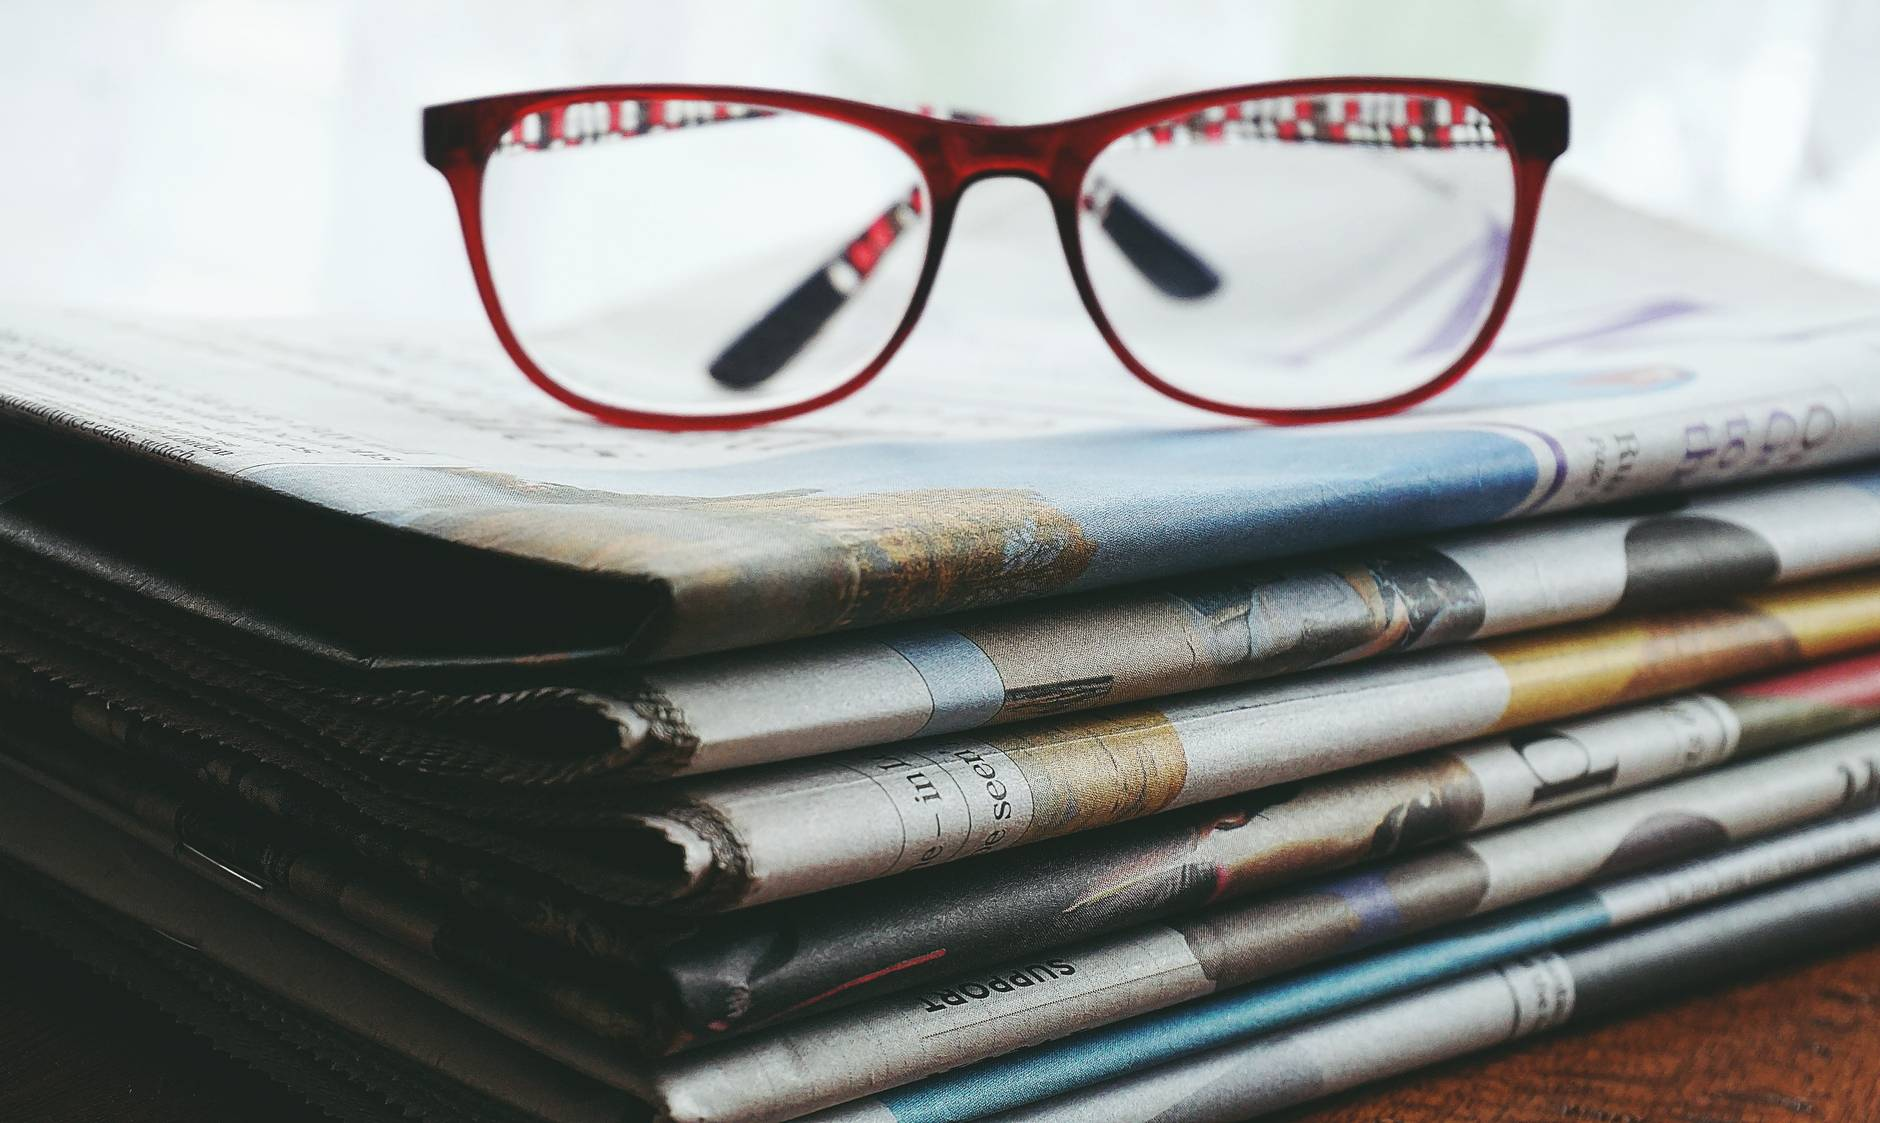 red framed eyeglasses on newspapers